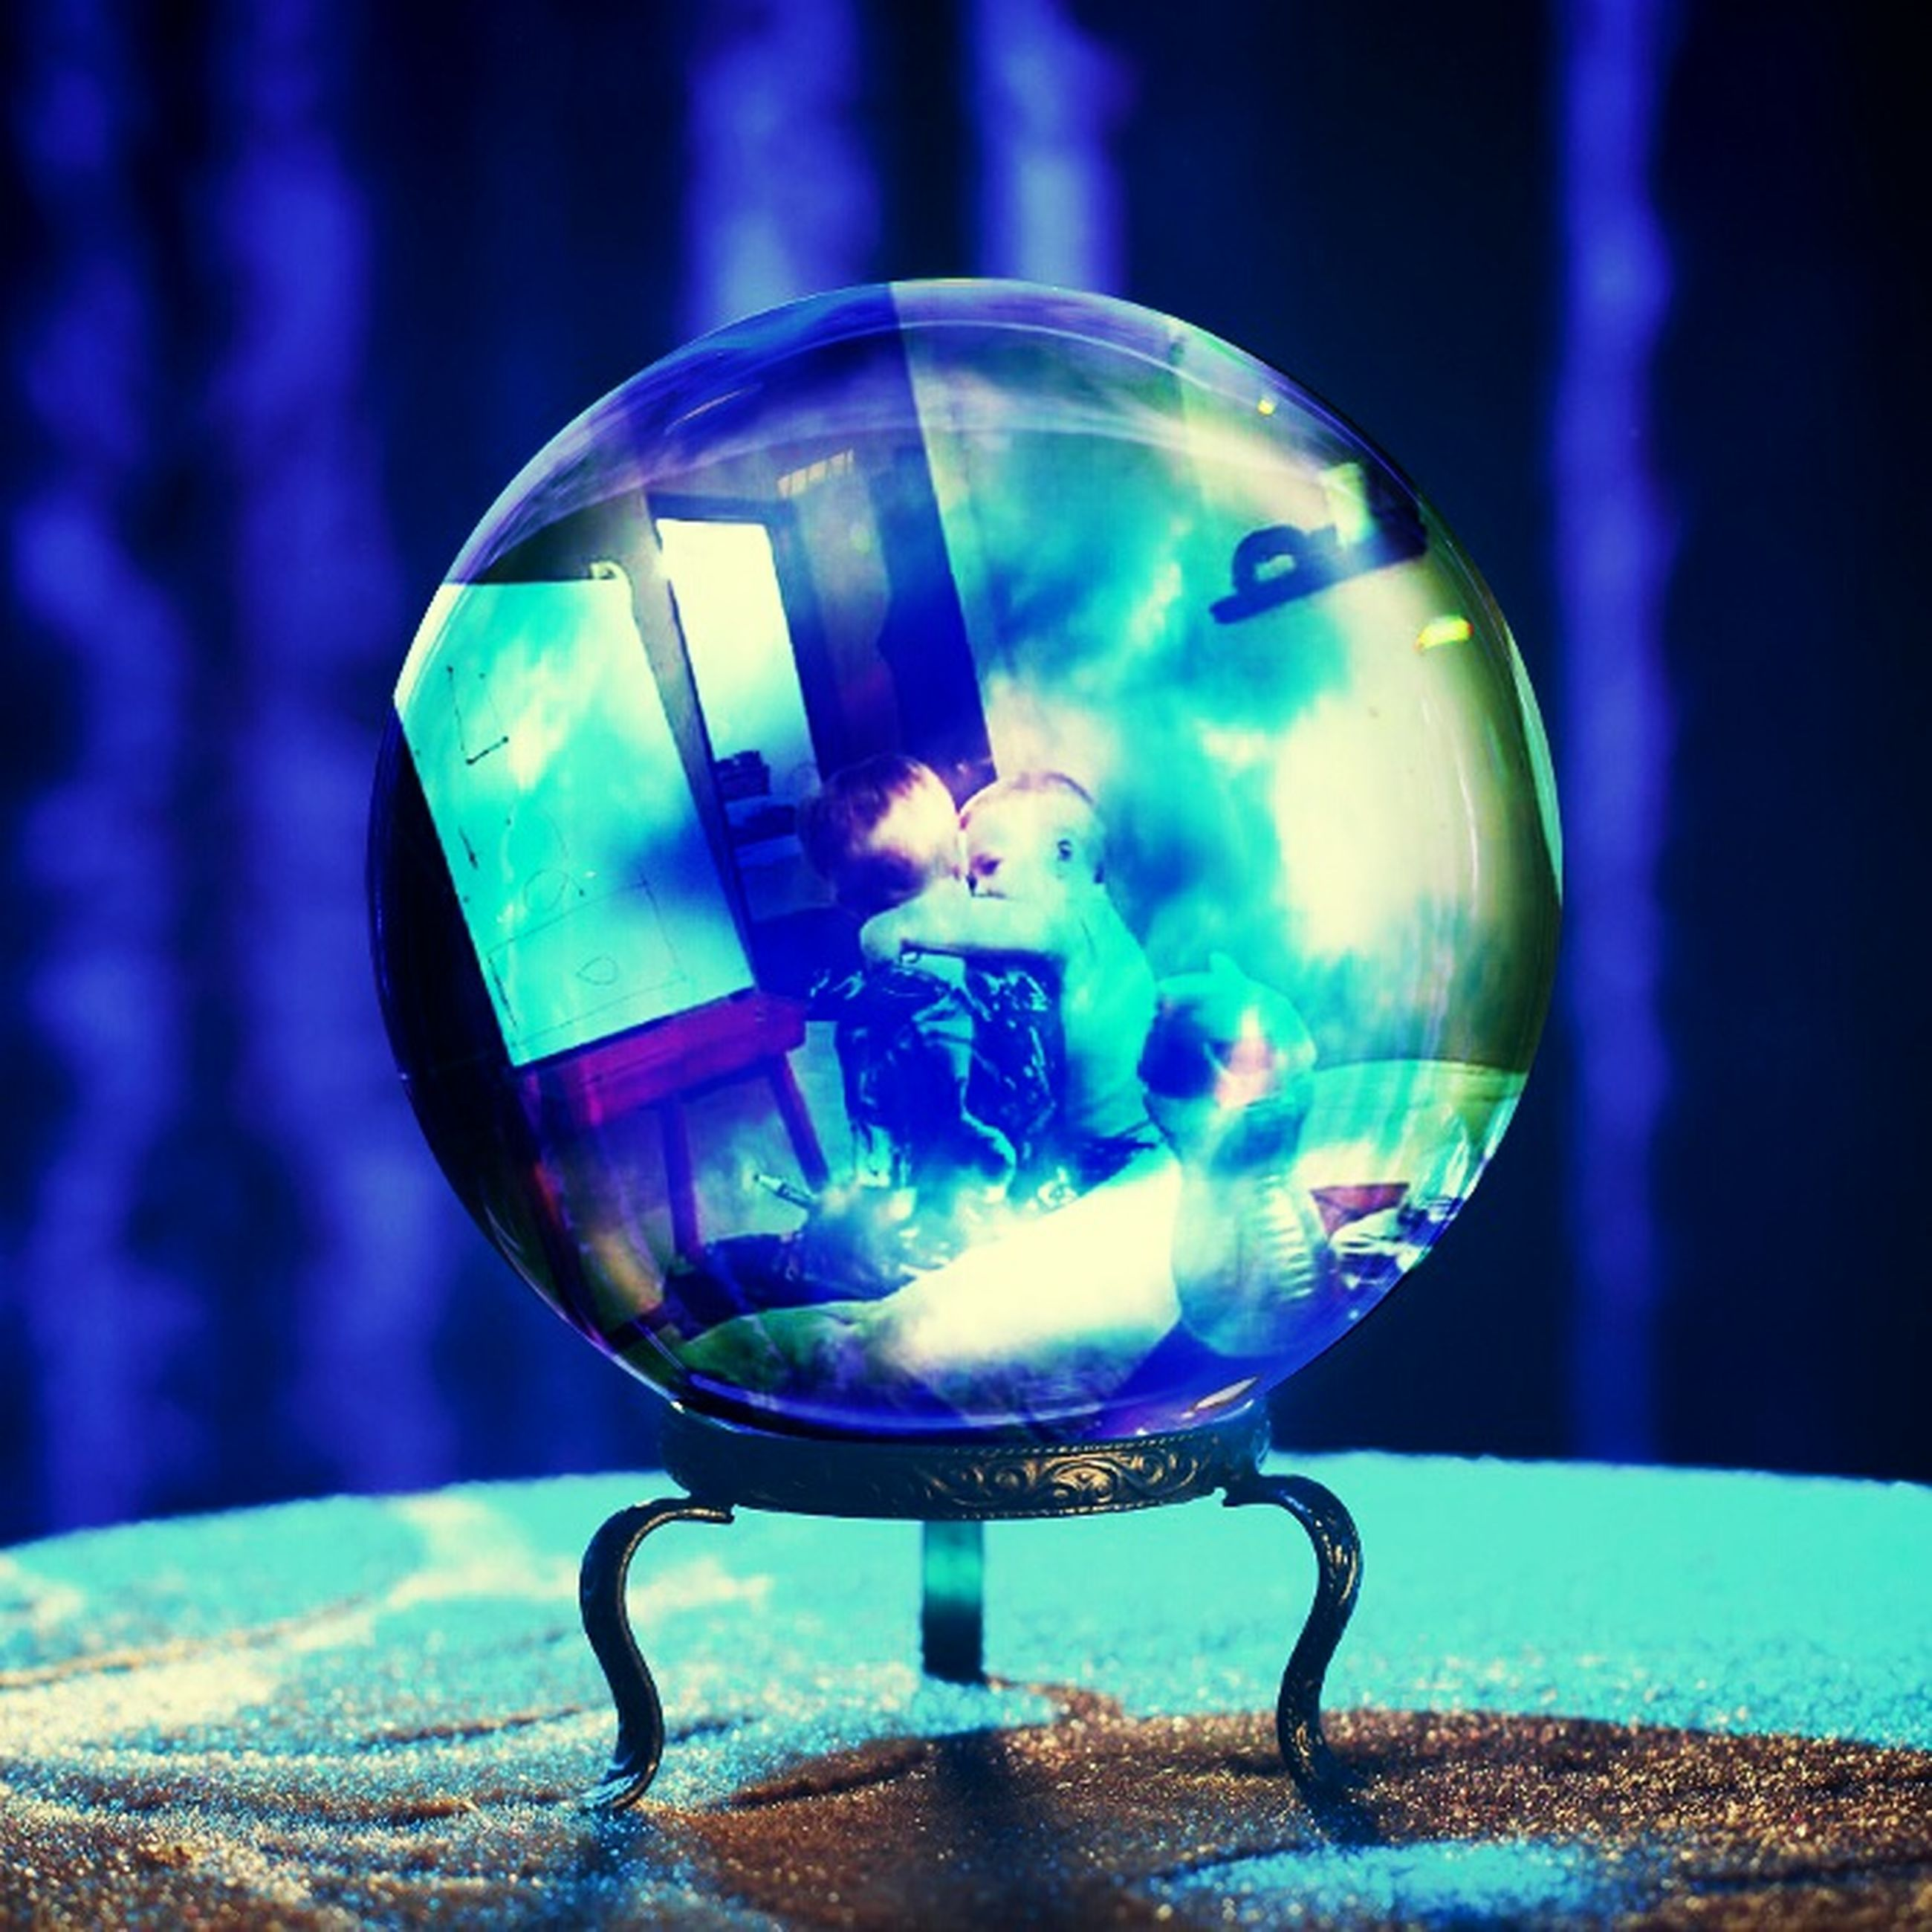 blue, close-up, illuminated, focus on foreground, glass - material, lighting equipment, indoors, transparent, sphere, night, reflection, shiny, metal, circle, single object, no people, sunlight, light - natural phenomenon